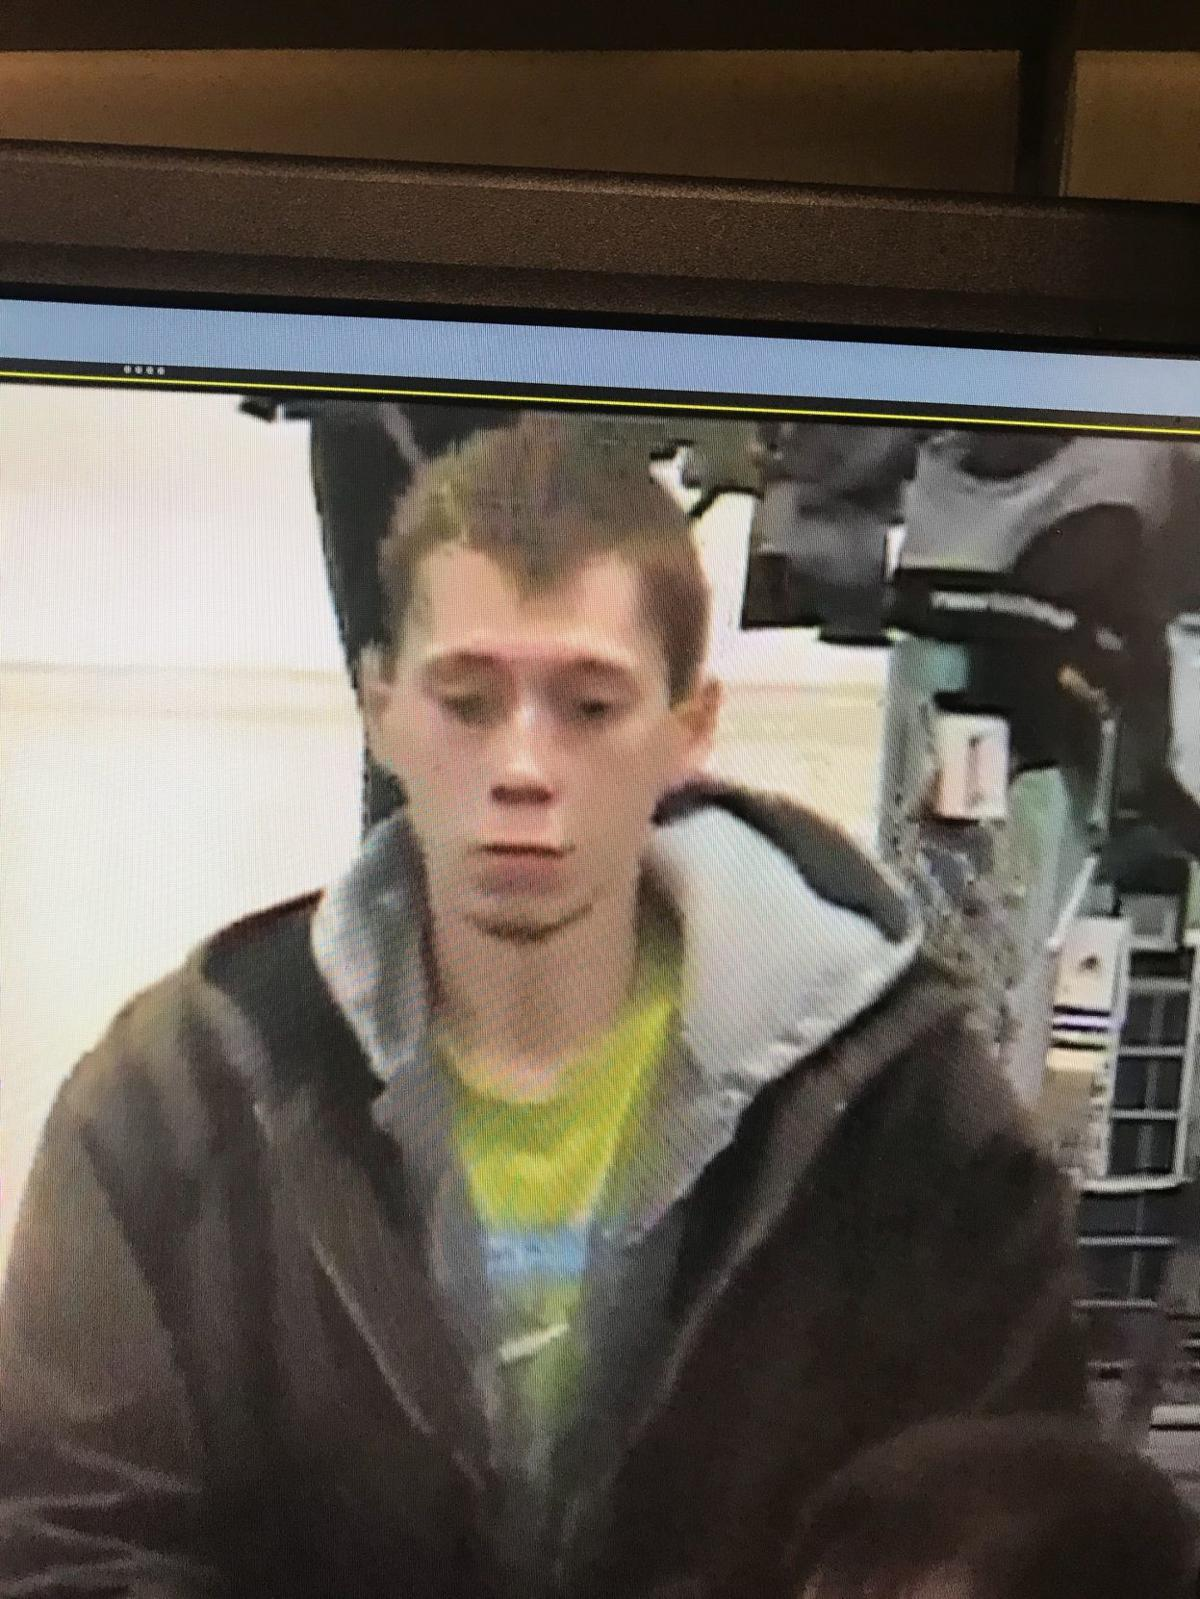 Schererville police seek public's help identifying man suspected of shoplifting at T.J. Maxx